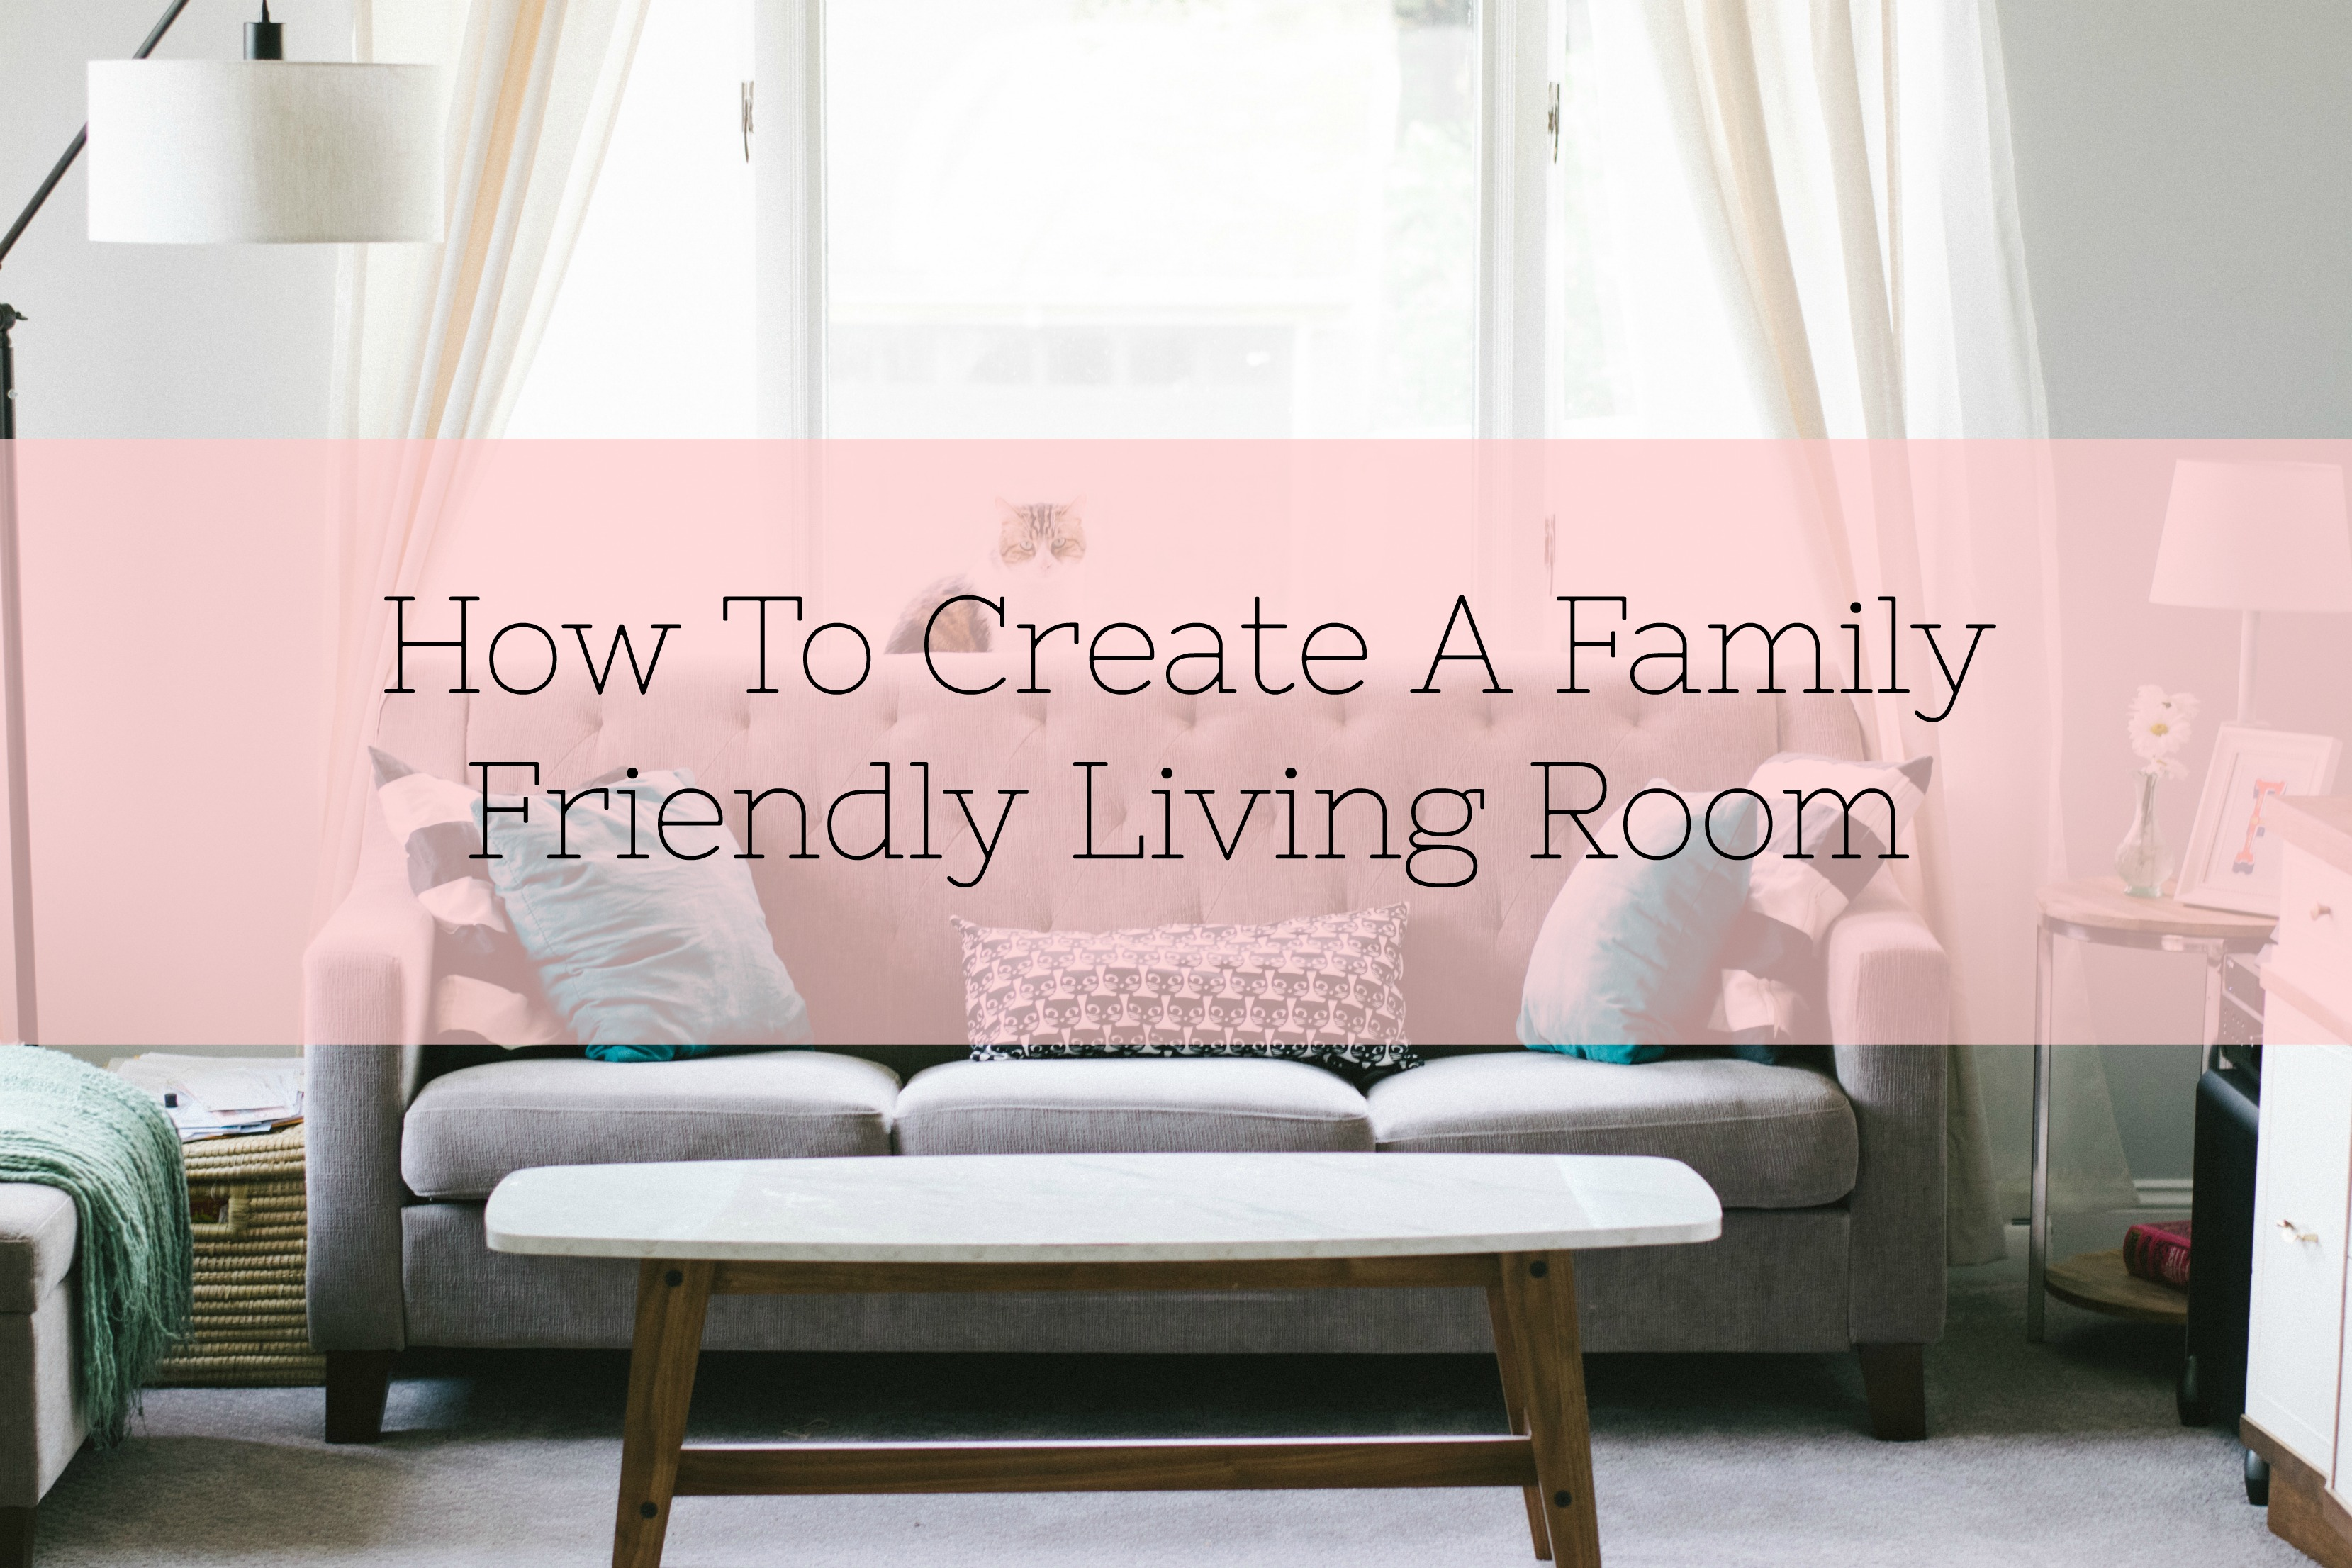 How To Create A Family-Friendly Living Room title